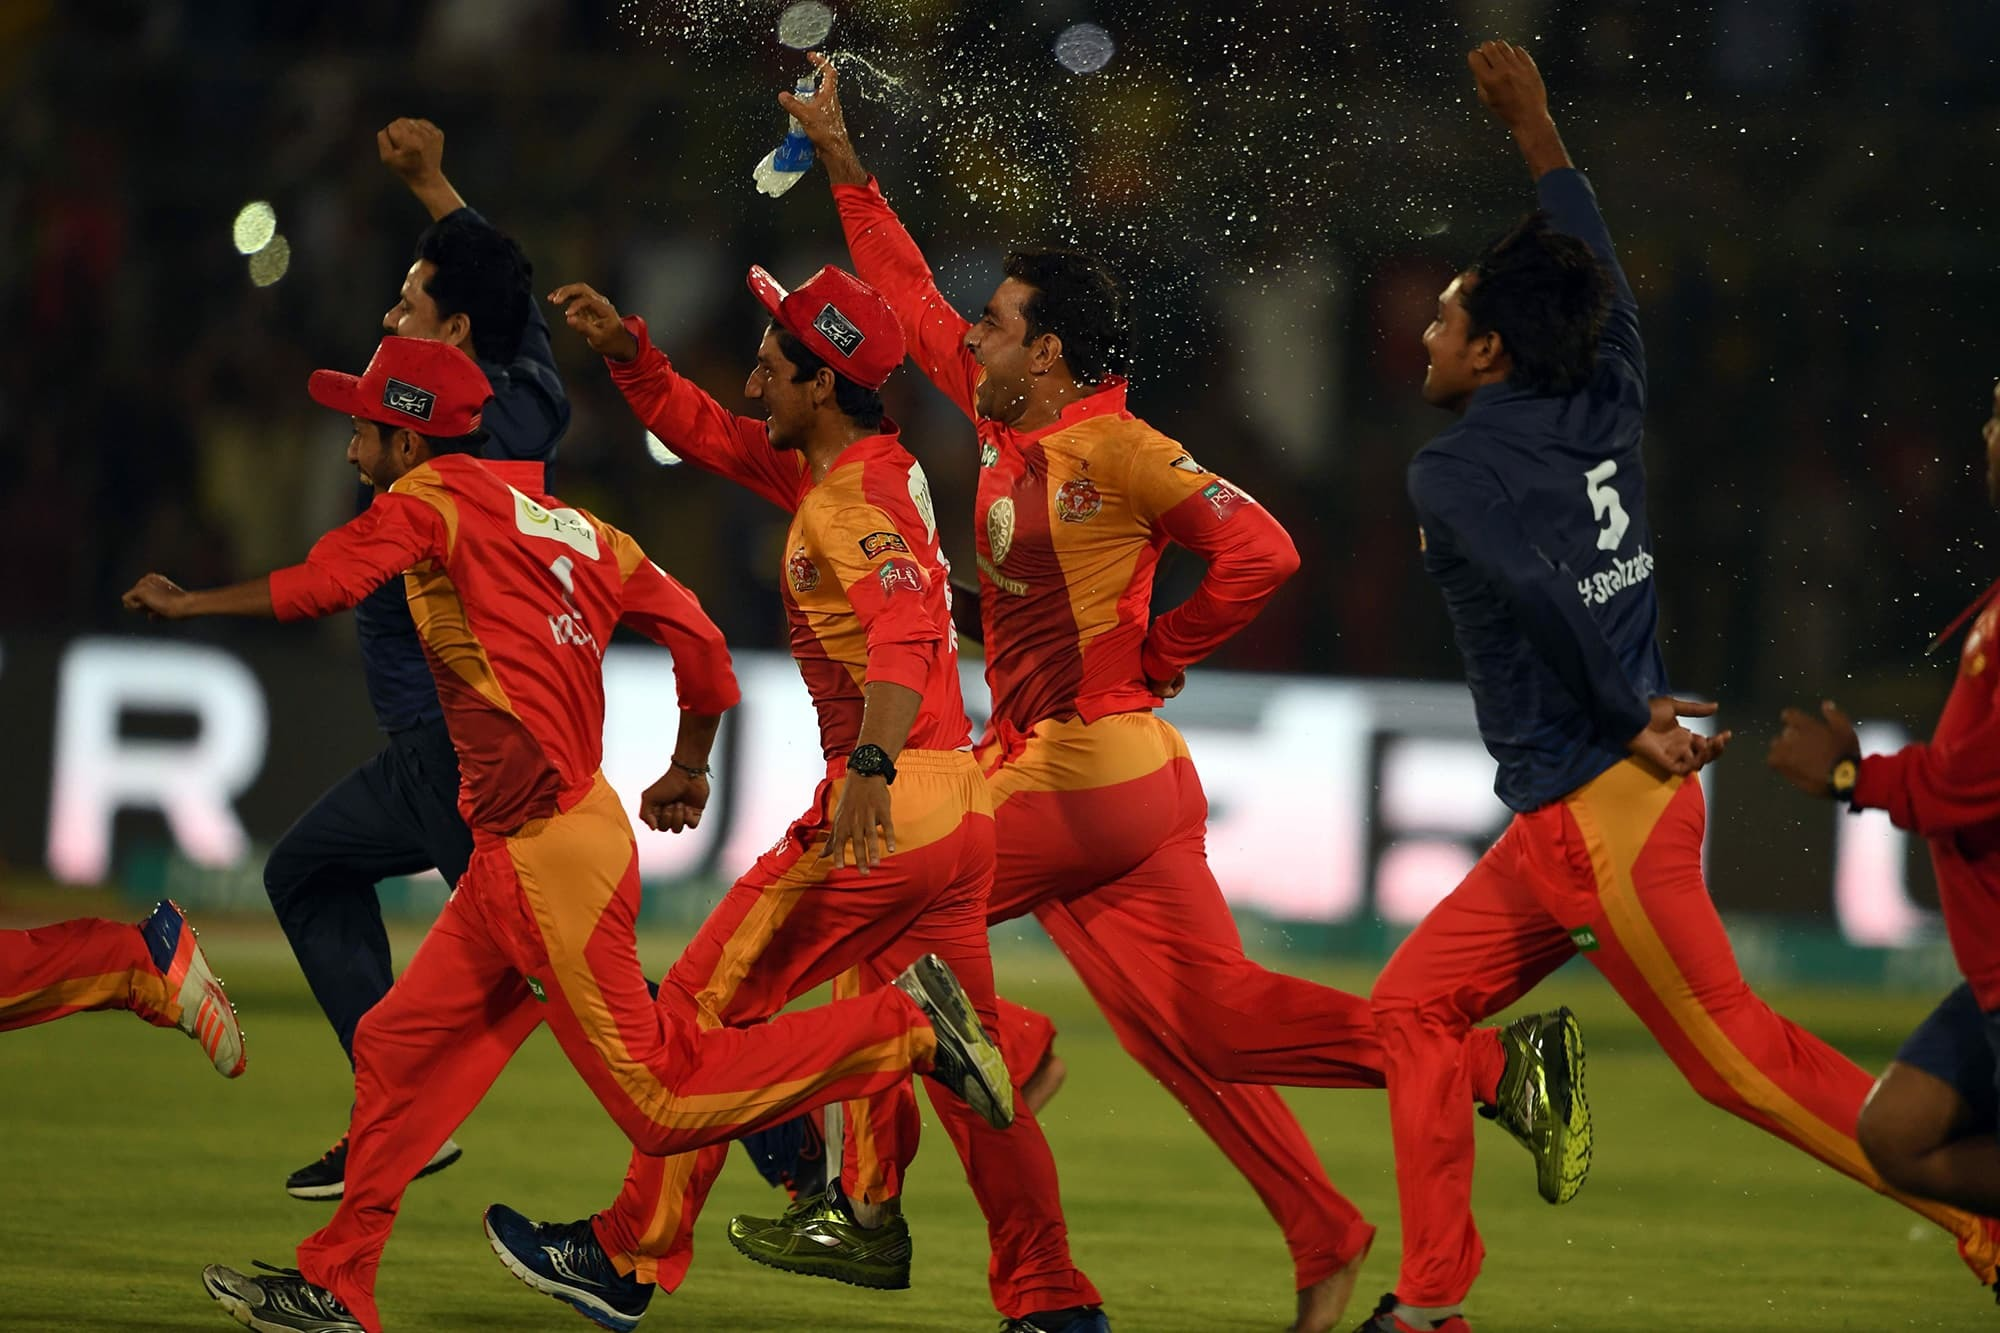 Islamabad United players run onto the pitch to celebrate their victory over Peshawar Zalmi in the final / AFP PHOTO / ASIF HASSAN — AFP or licensors